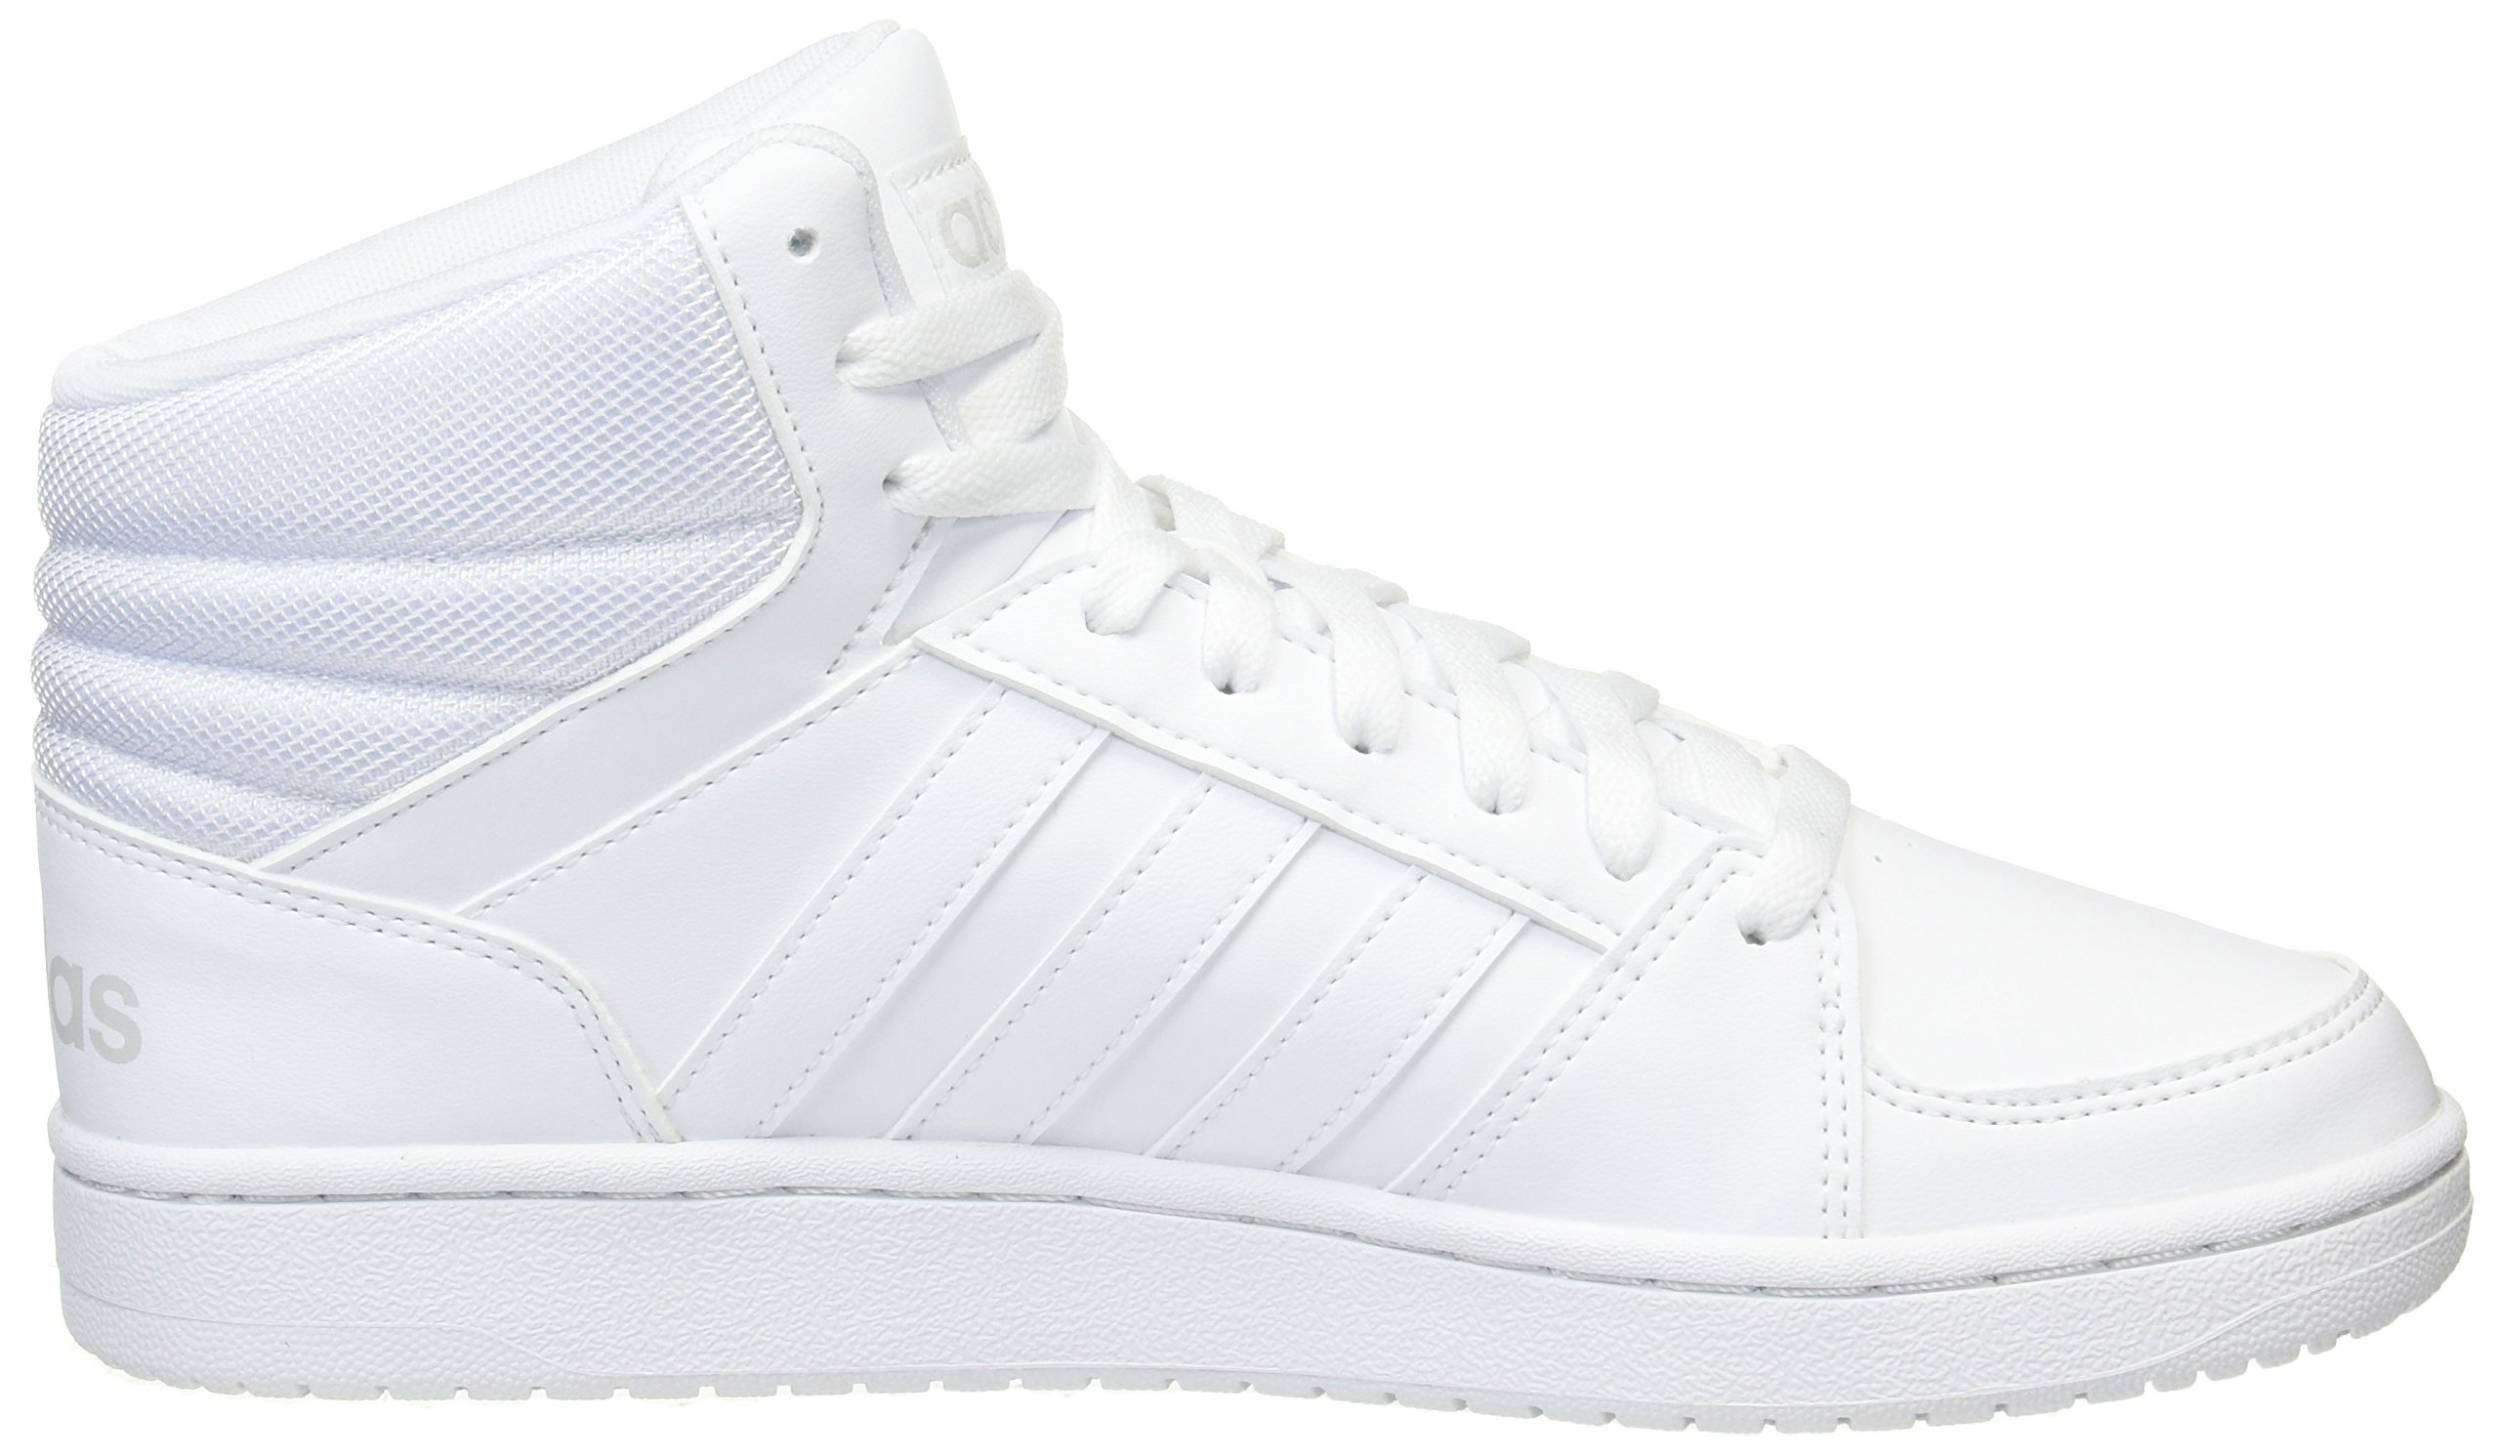 adidas Neo Hoops VS Mid Shoes Men's